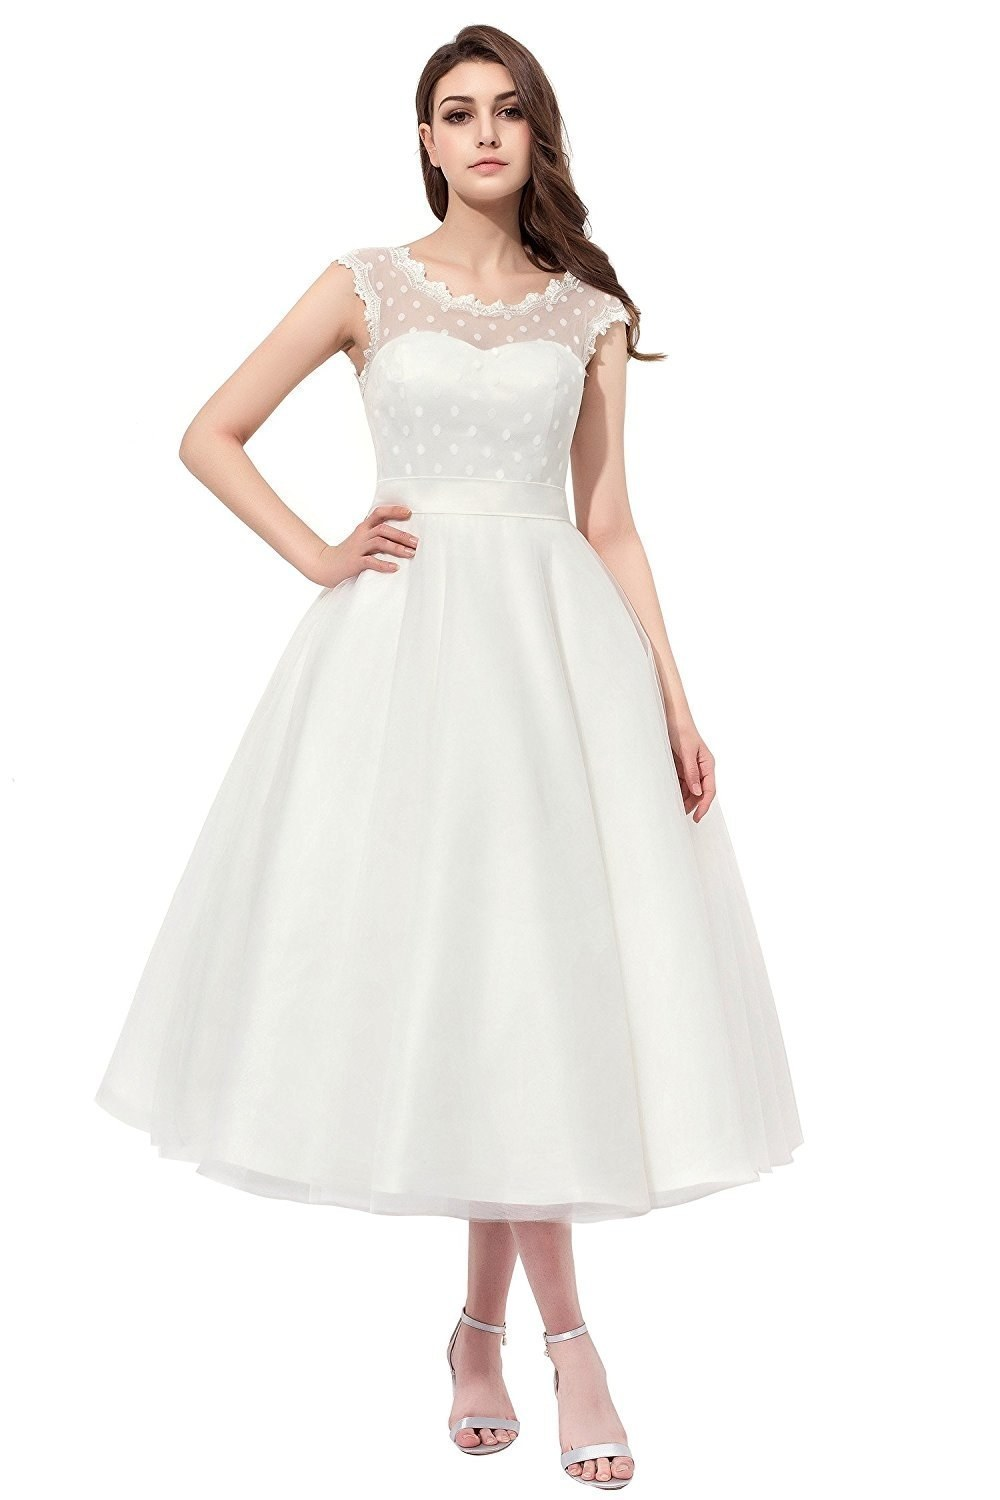 Red and white wedding dresses 2018 nfl